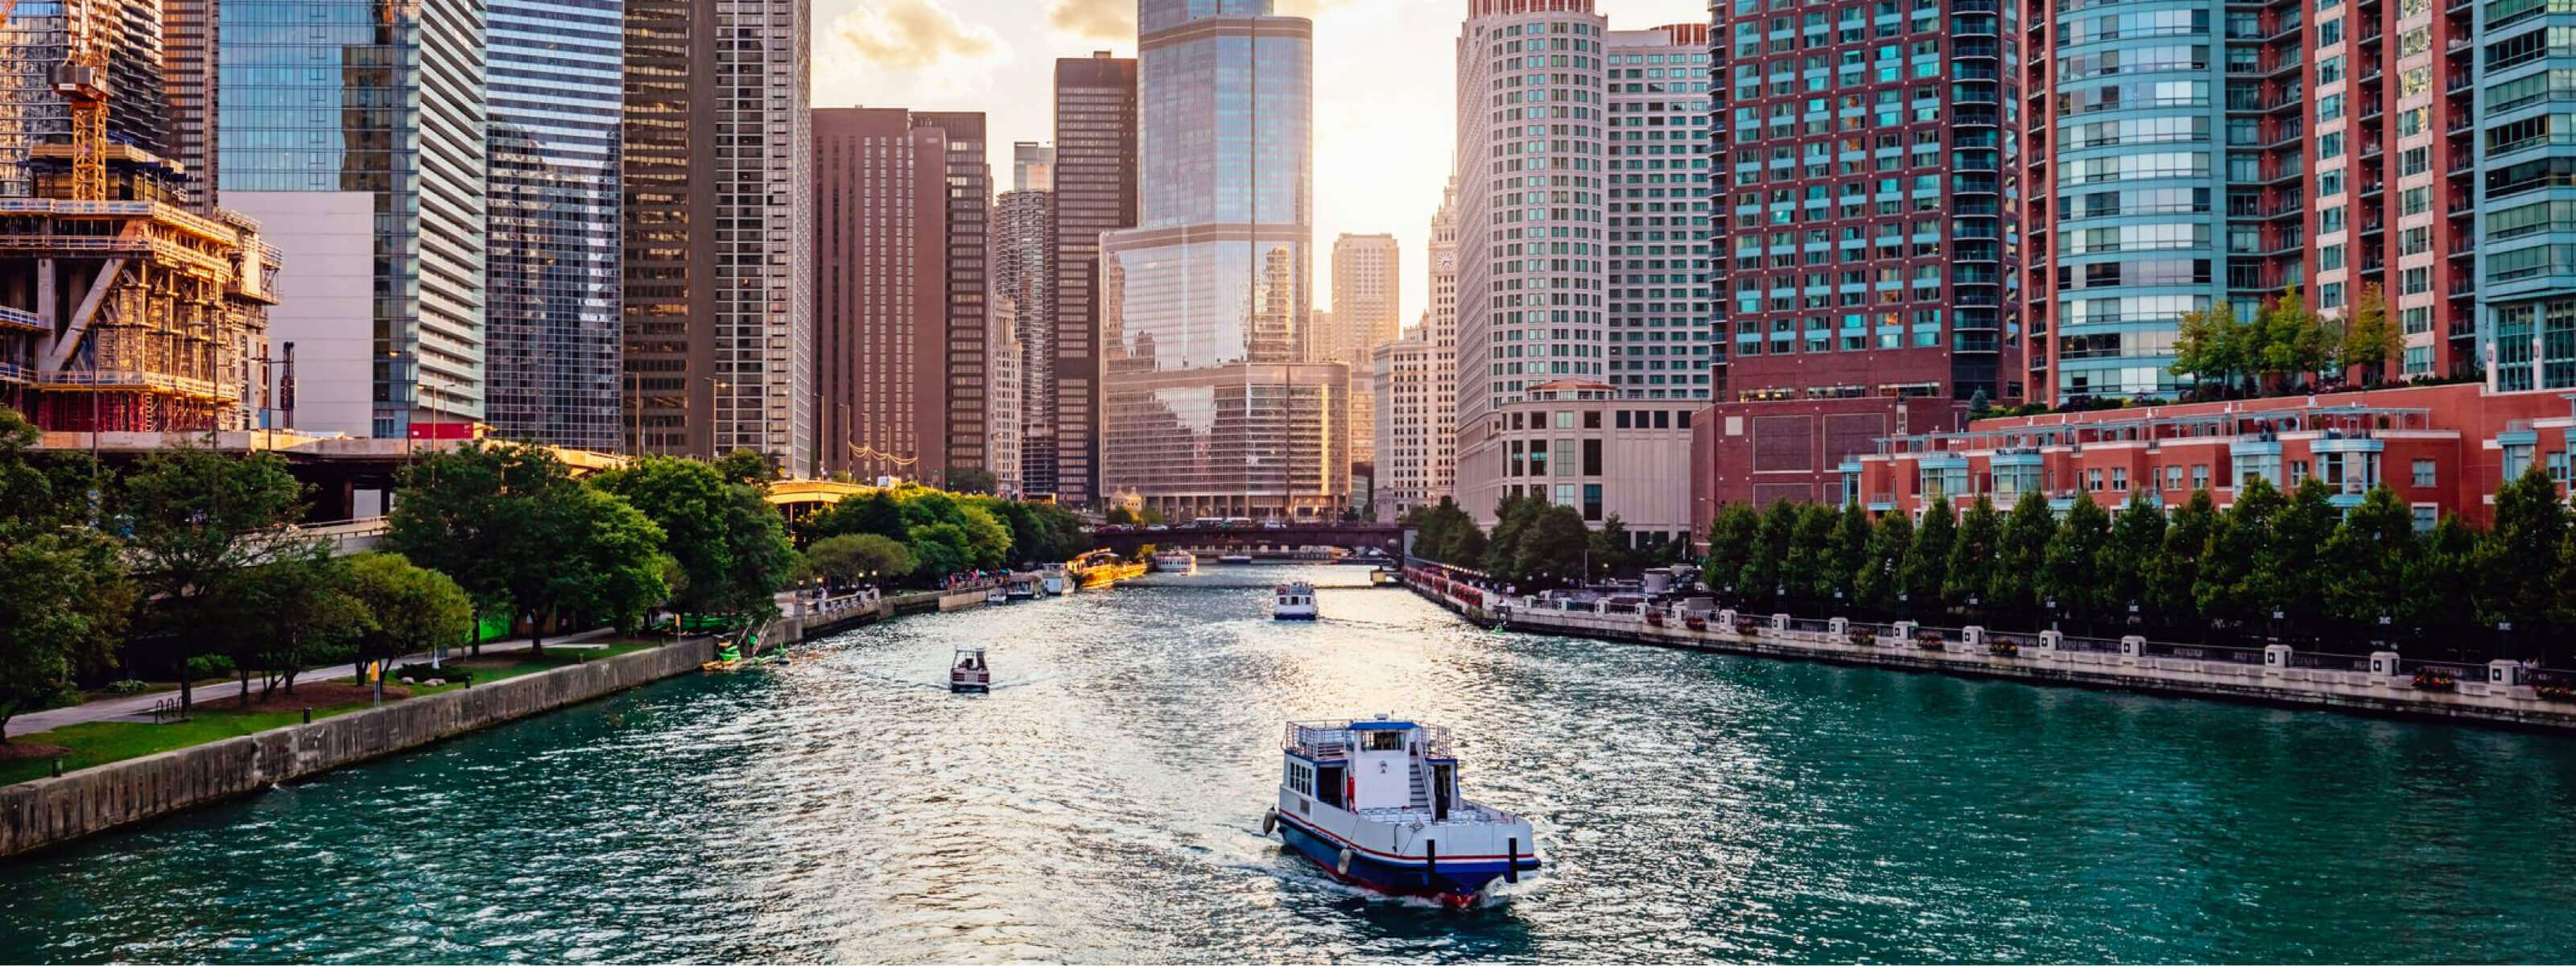 YachtLife's top Yachting Activities in Chicago - Chicago River